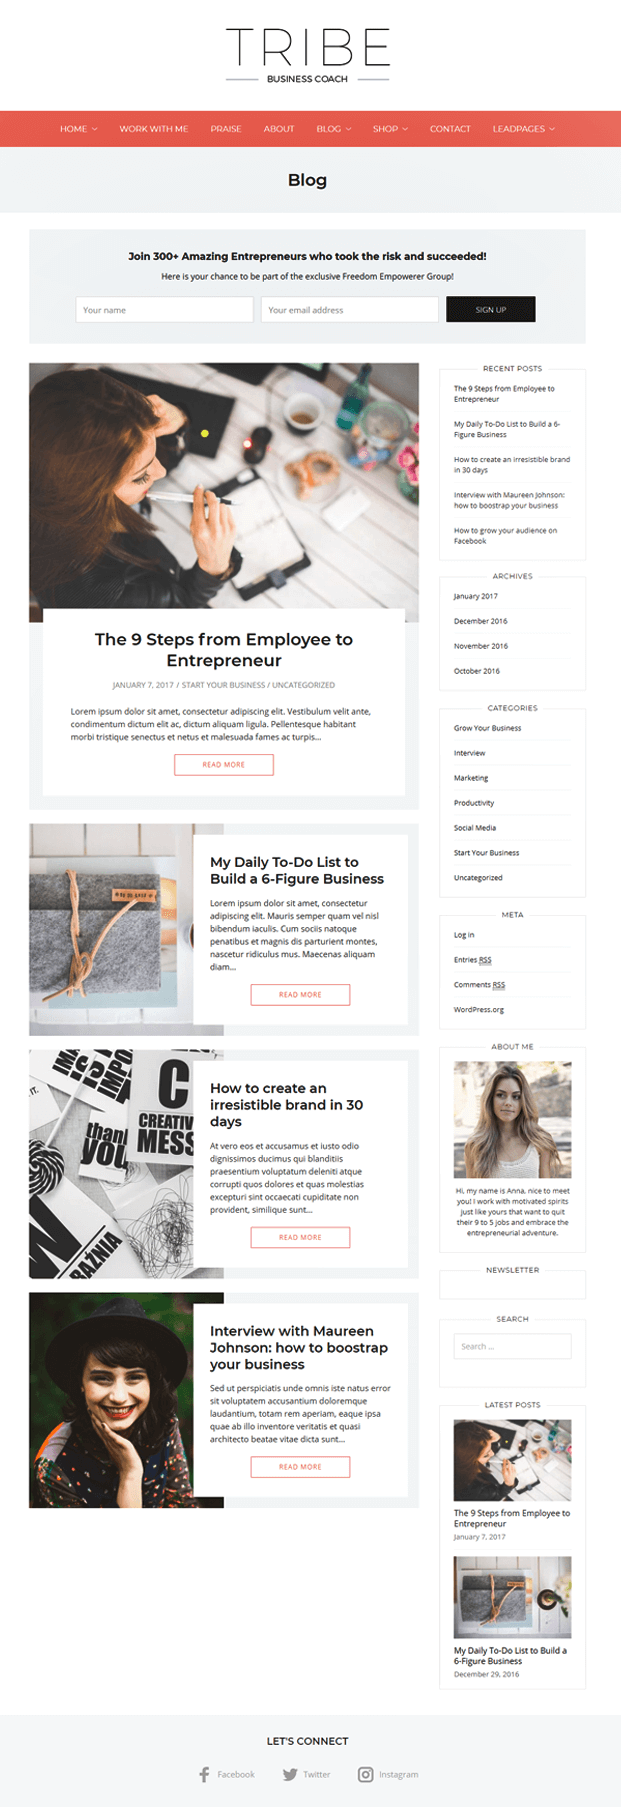 Blog - WordPress Coaching Theme